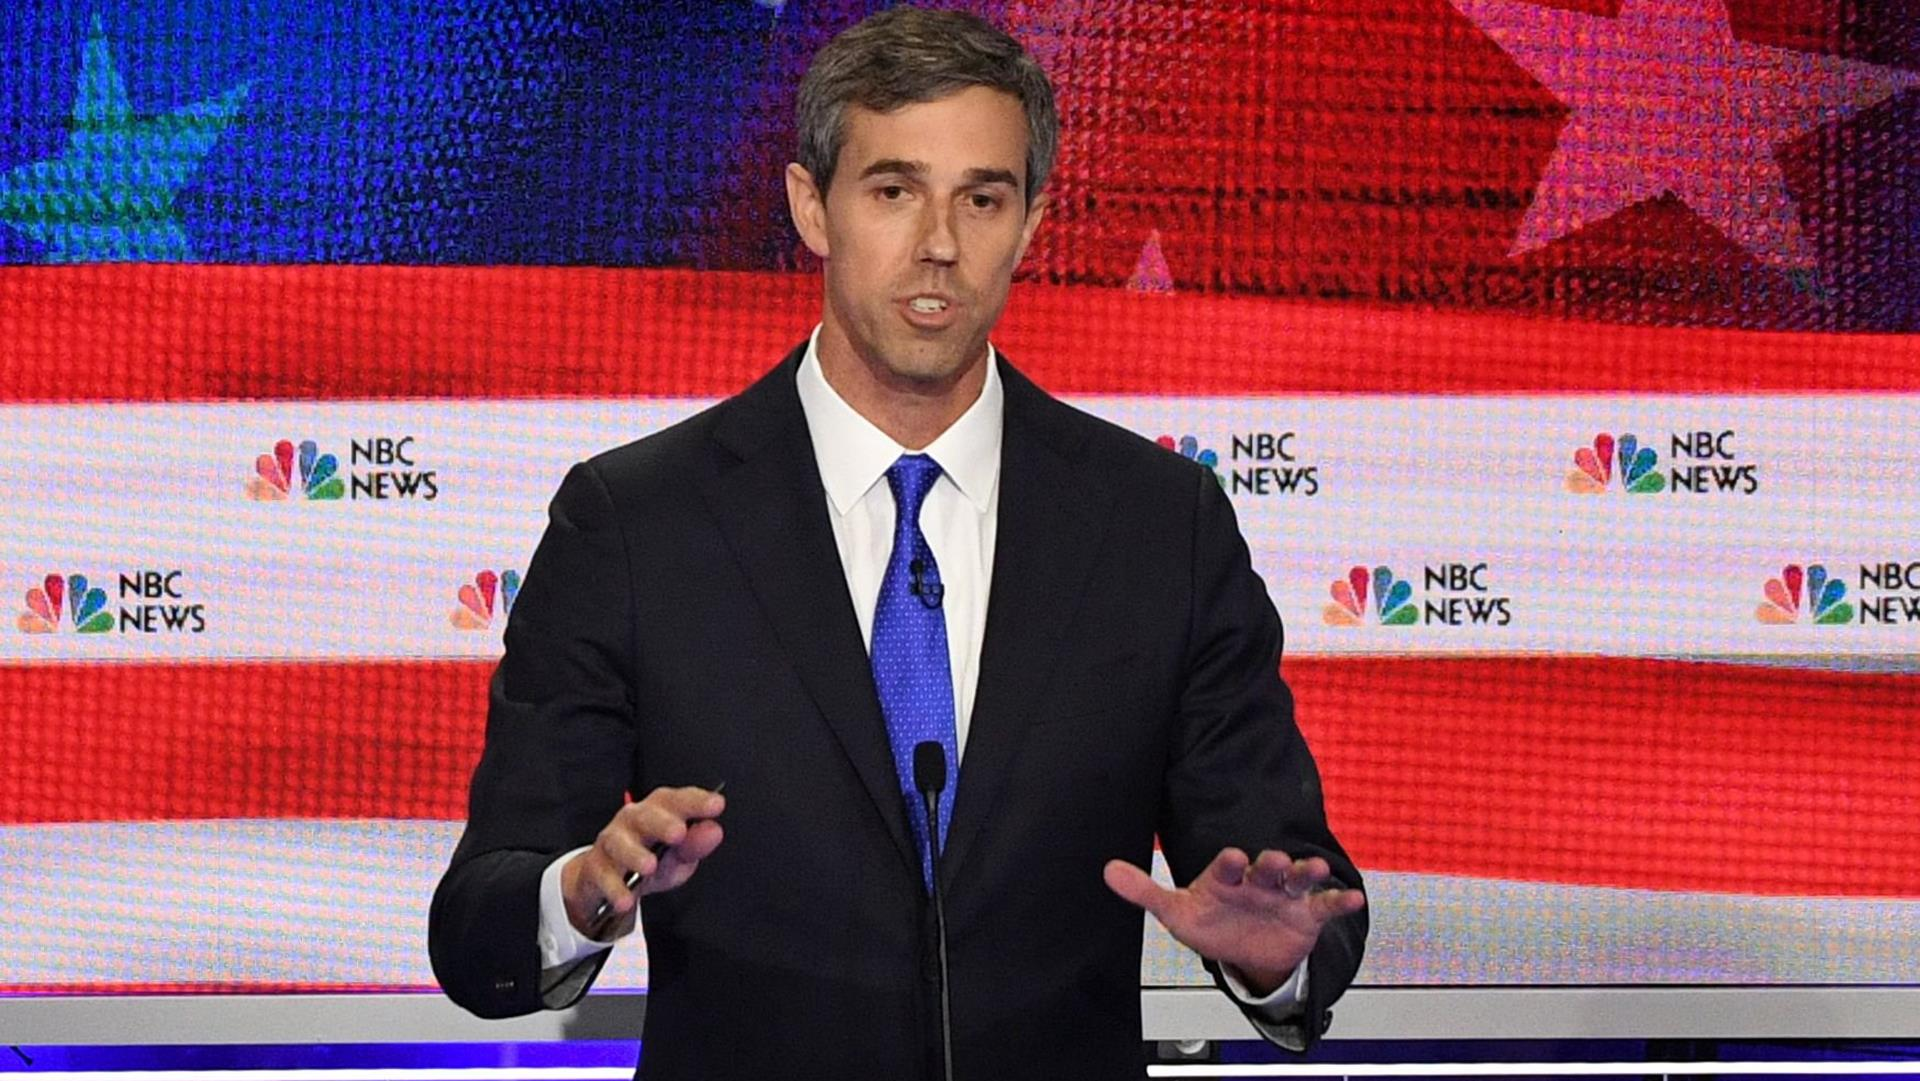 Beto O'Rourke: Young people are taking charge on gun control